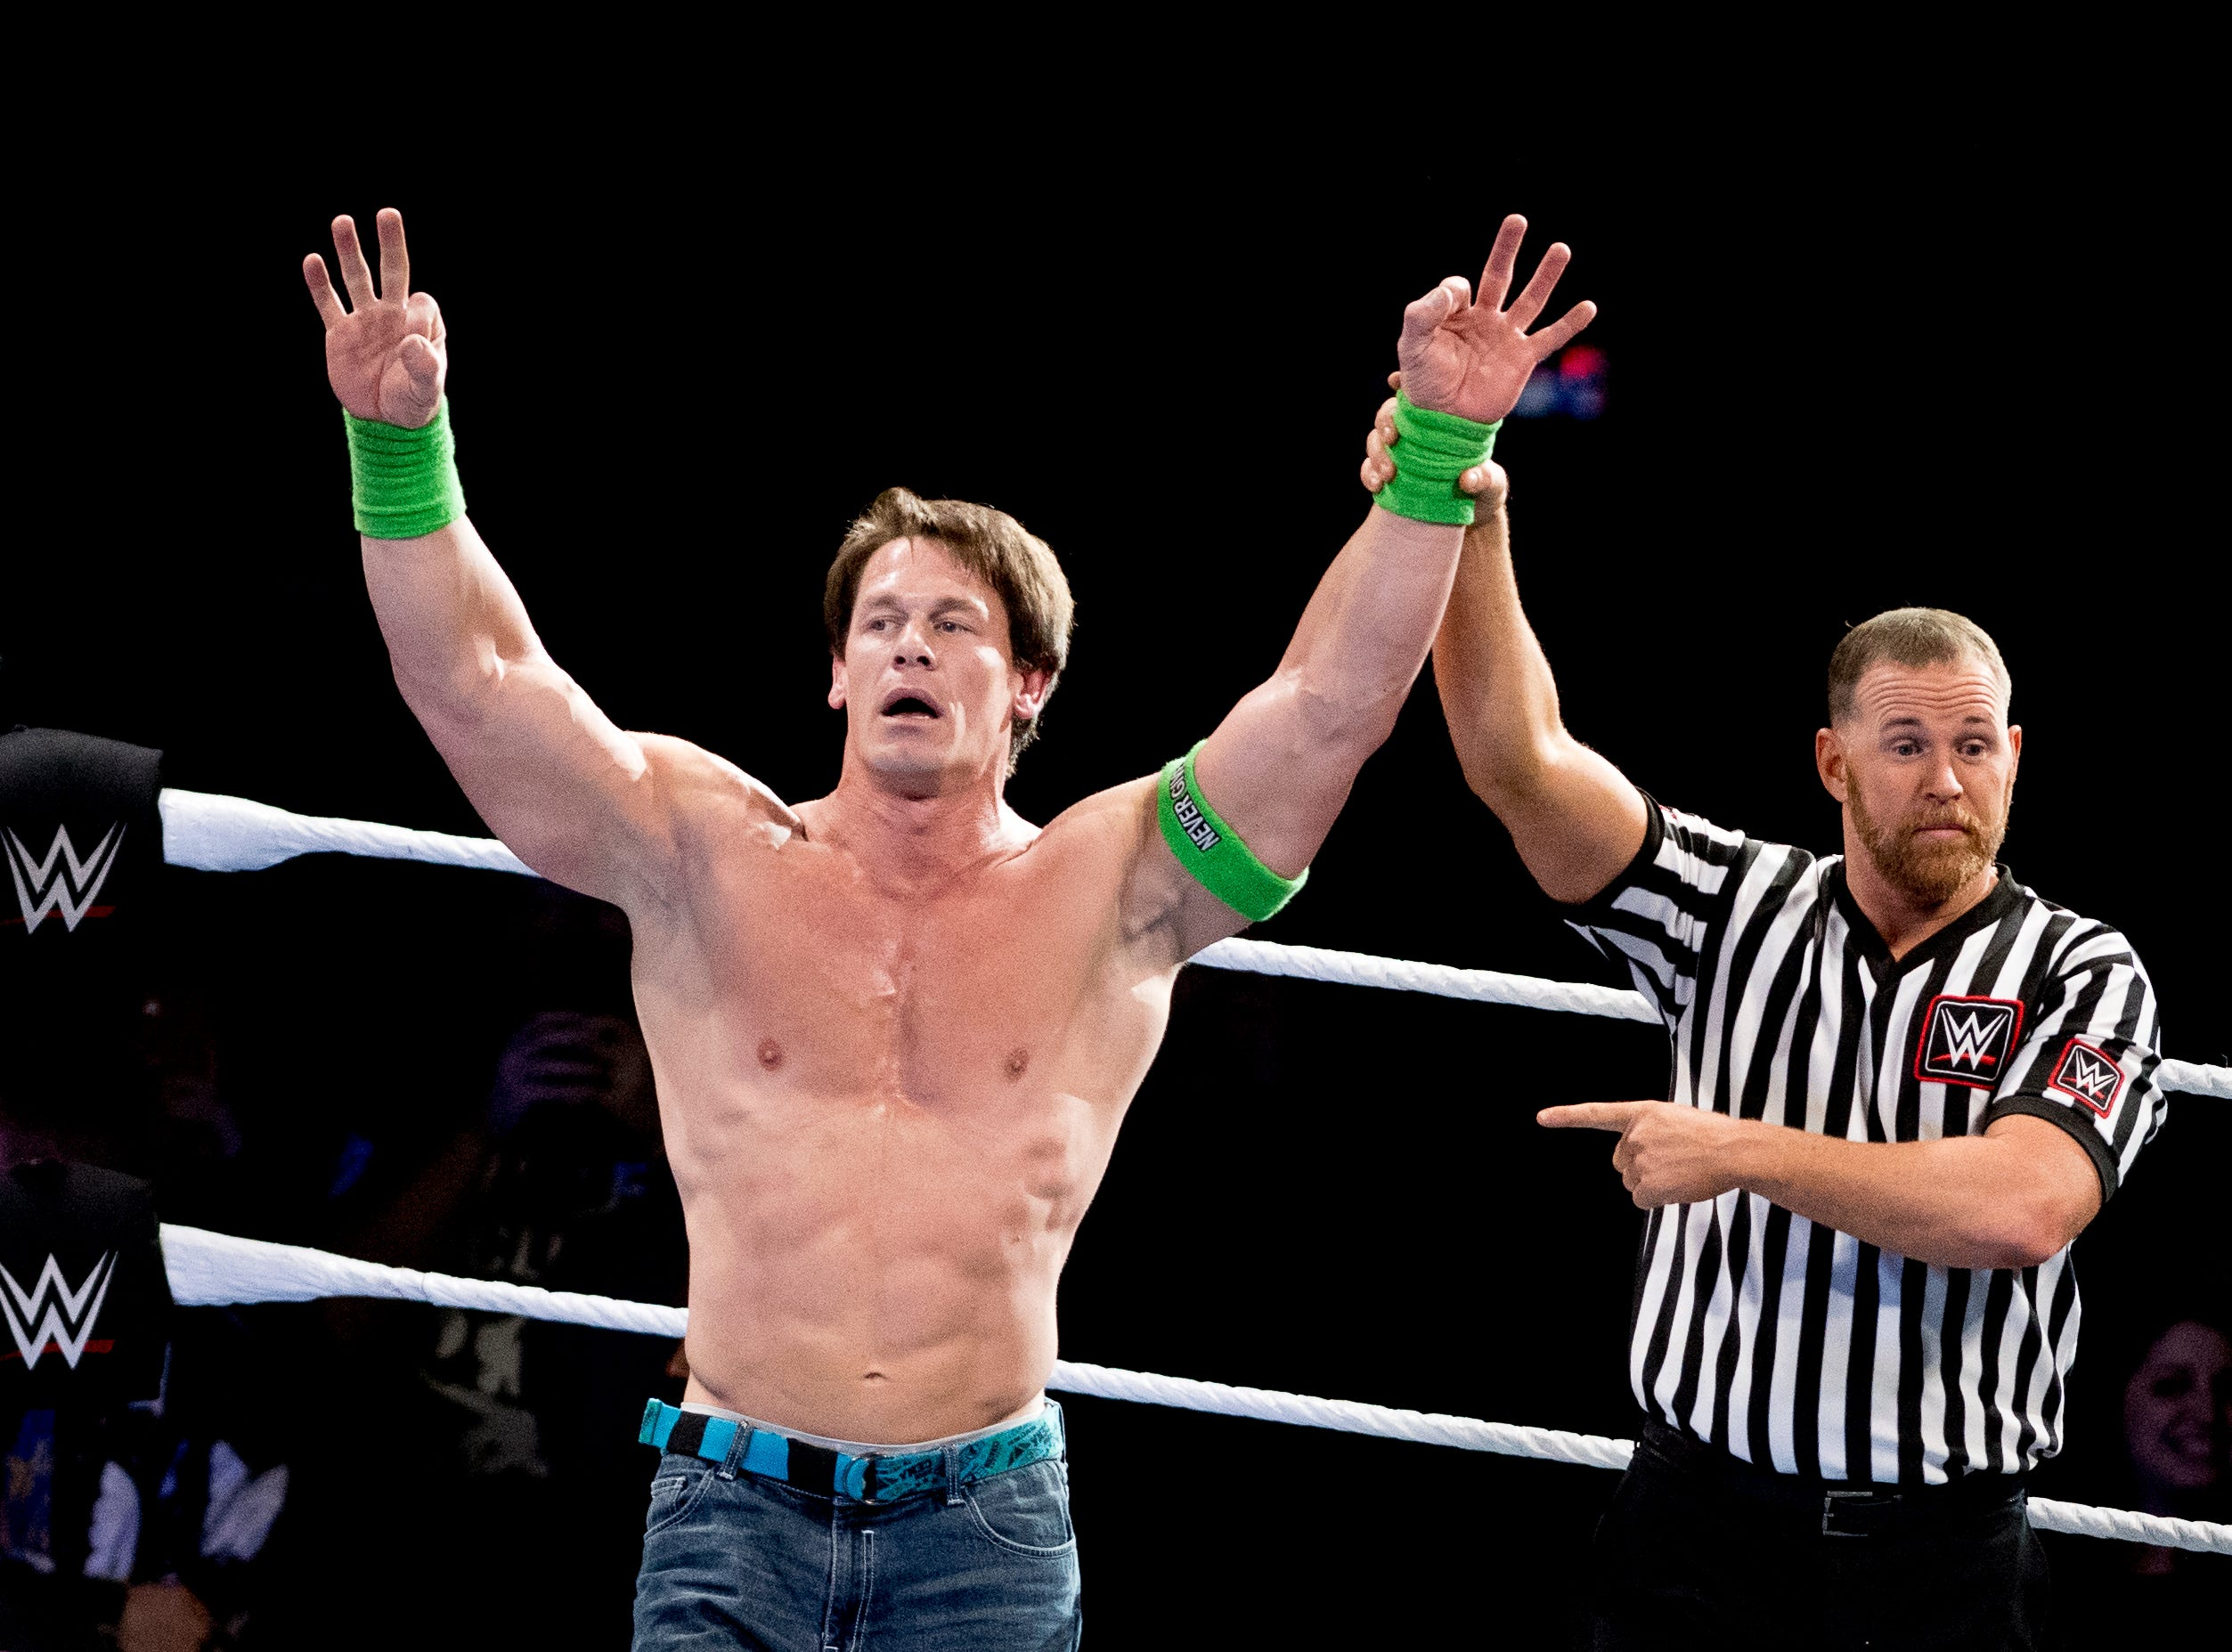 John Cena defeats Baron Corbin during a WWE Live performance at the Knoxville Civic Coliseum in Knoxville, Tennessee on Saturday, January 12, 2019. *KNOXVILLE NEWS SENTINEL USE ONLY*